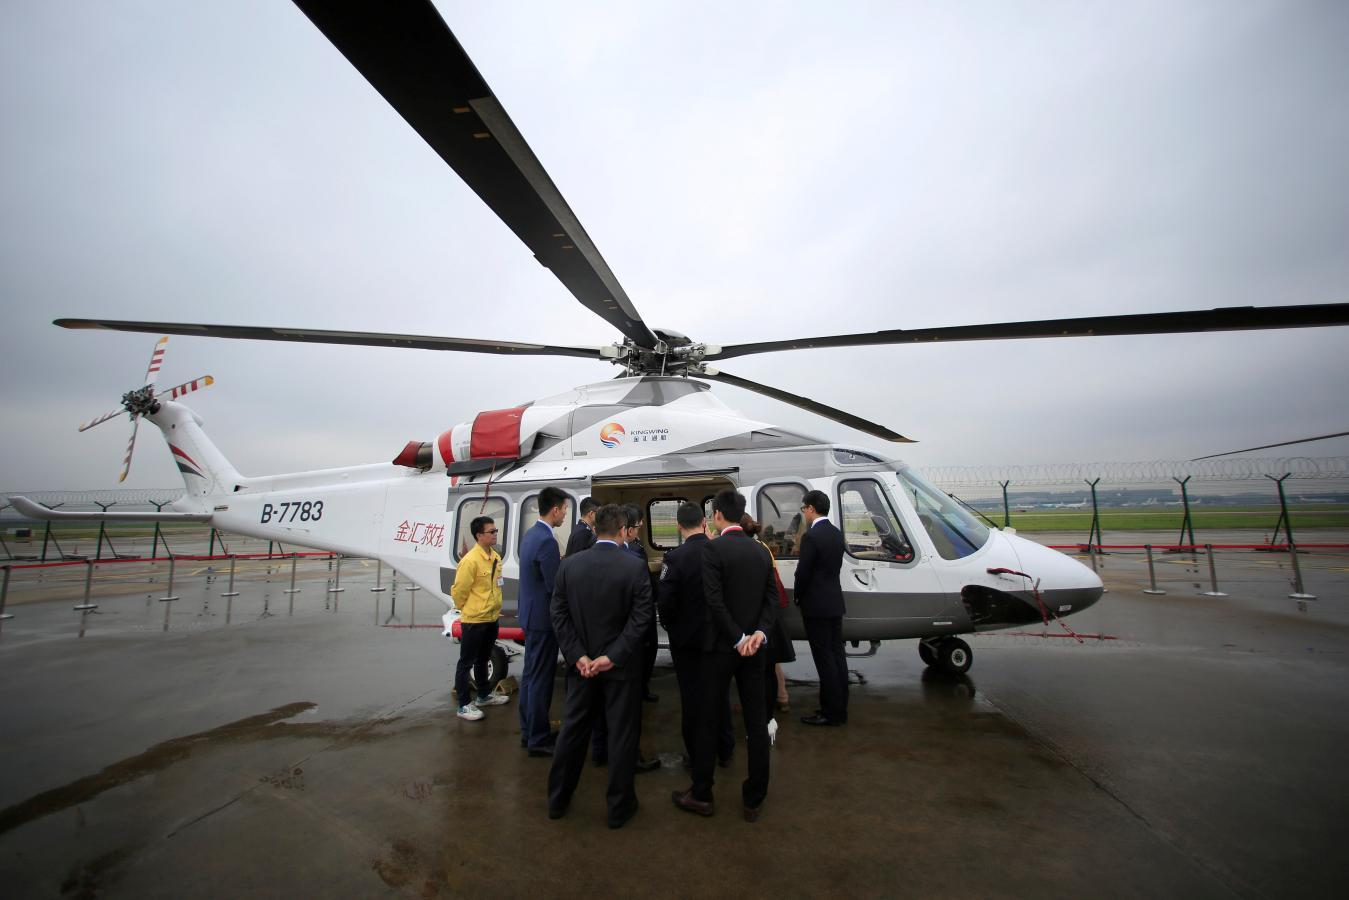 Call the air ambulance: Medical helicopters tipped for